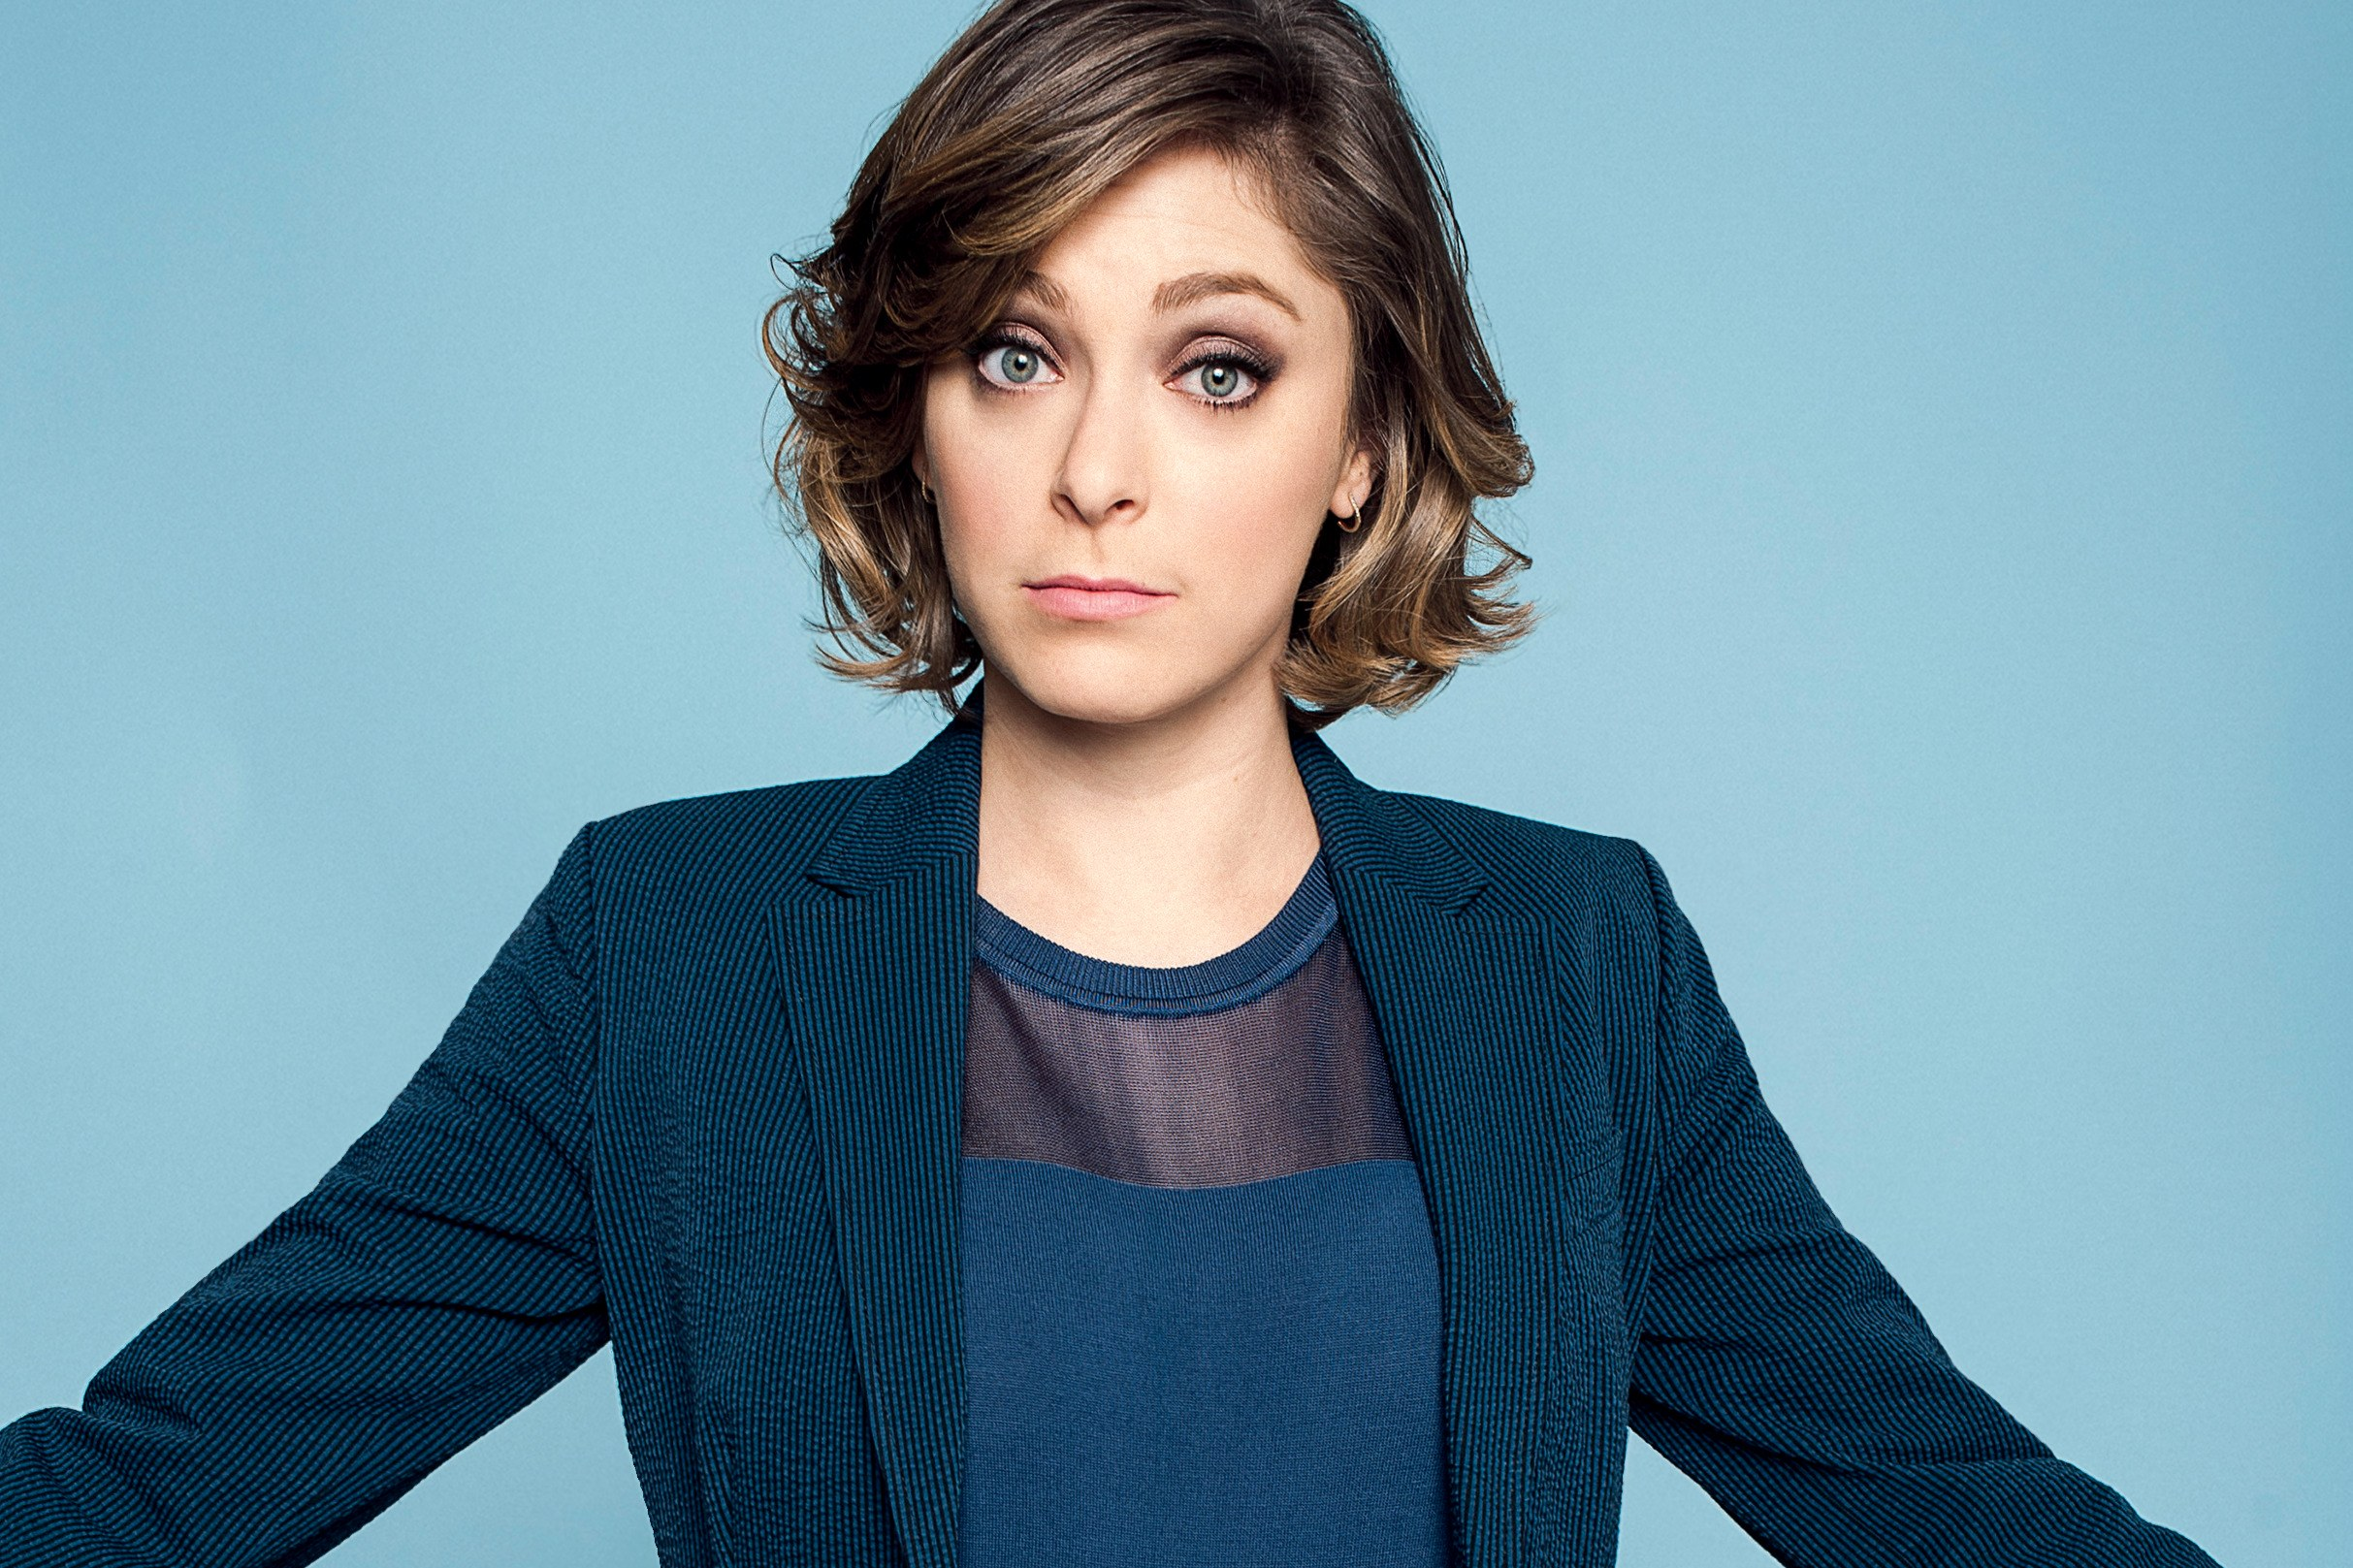 Rachel Bloom American Actress, Singer, Songwriter, Writer, Comedian